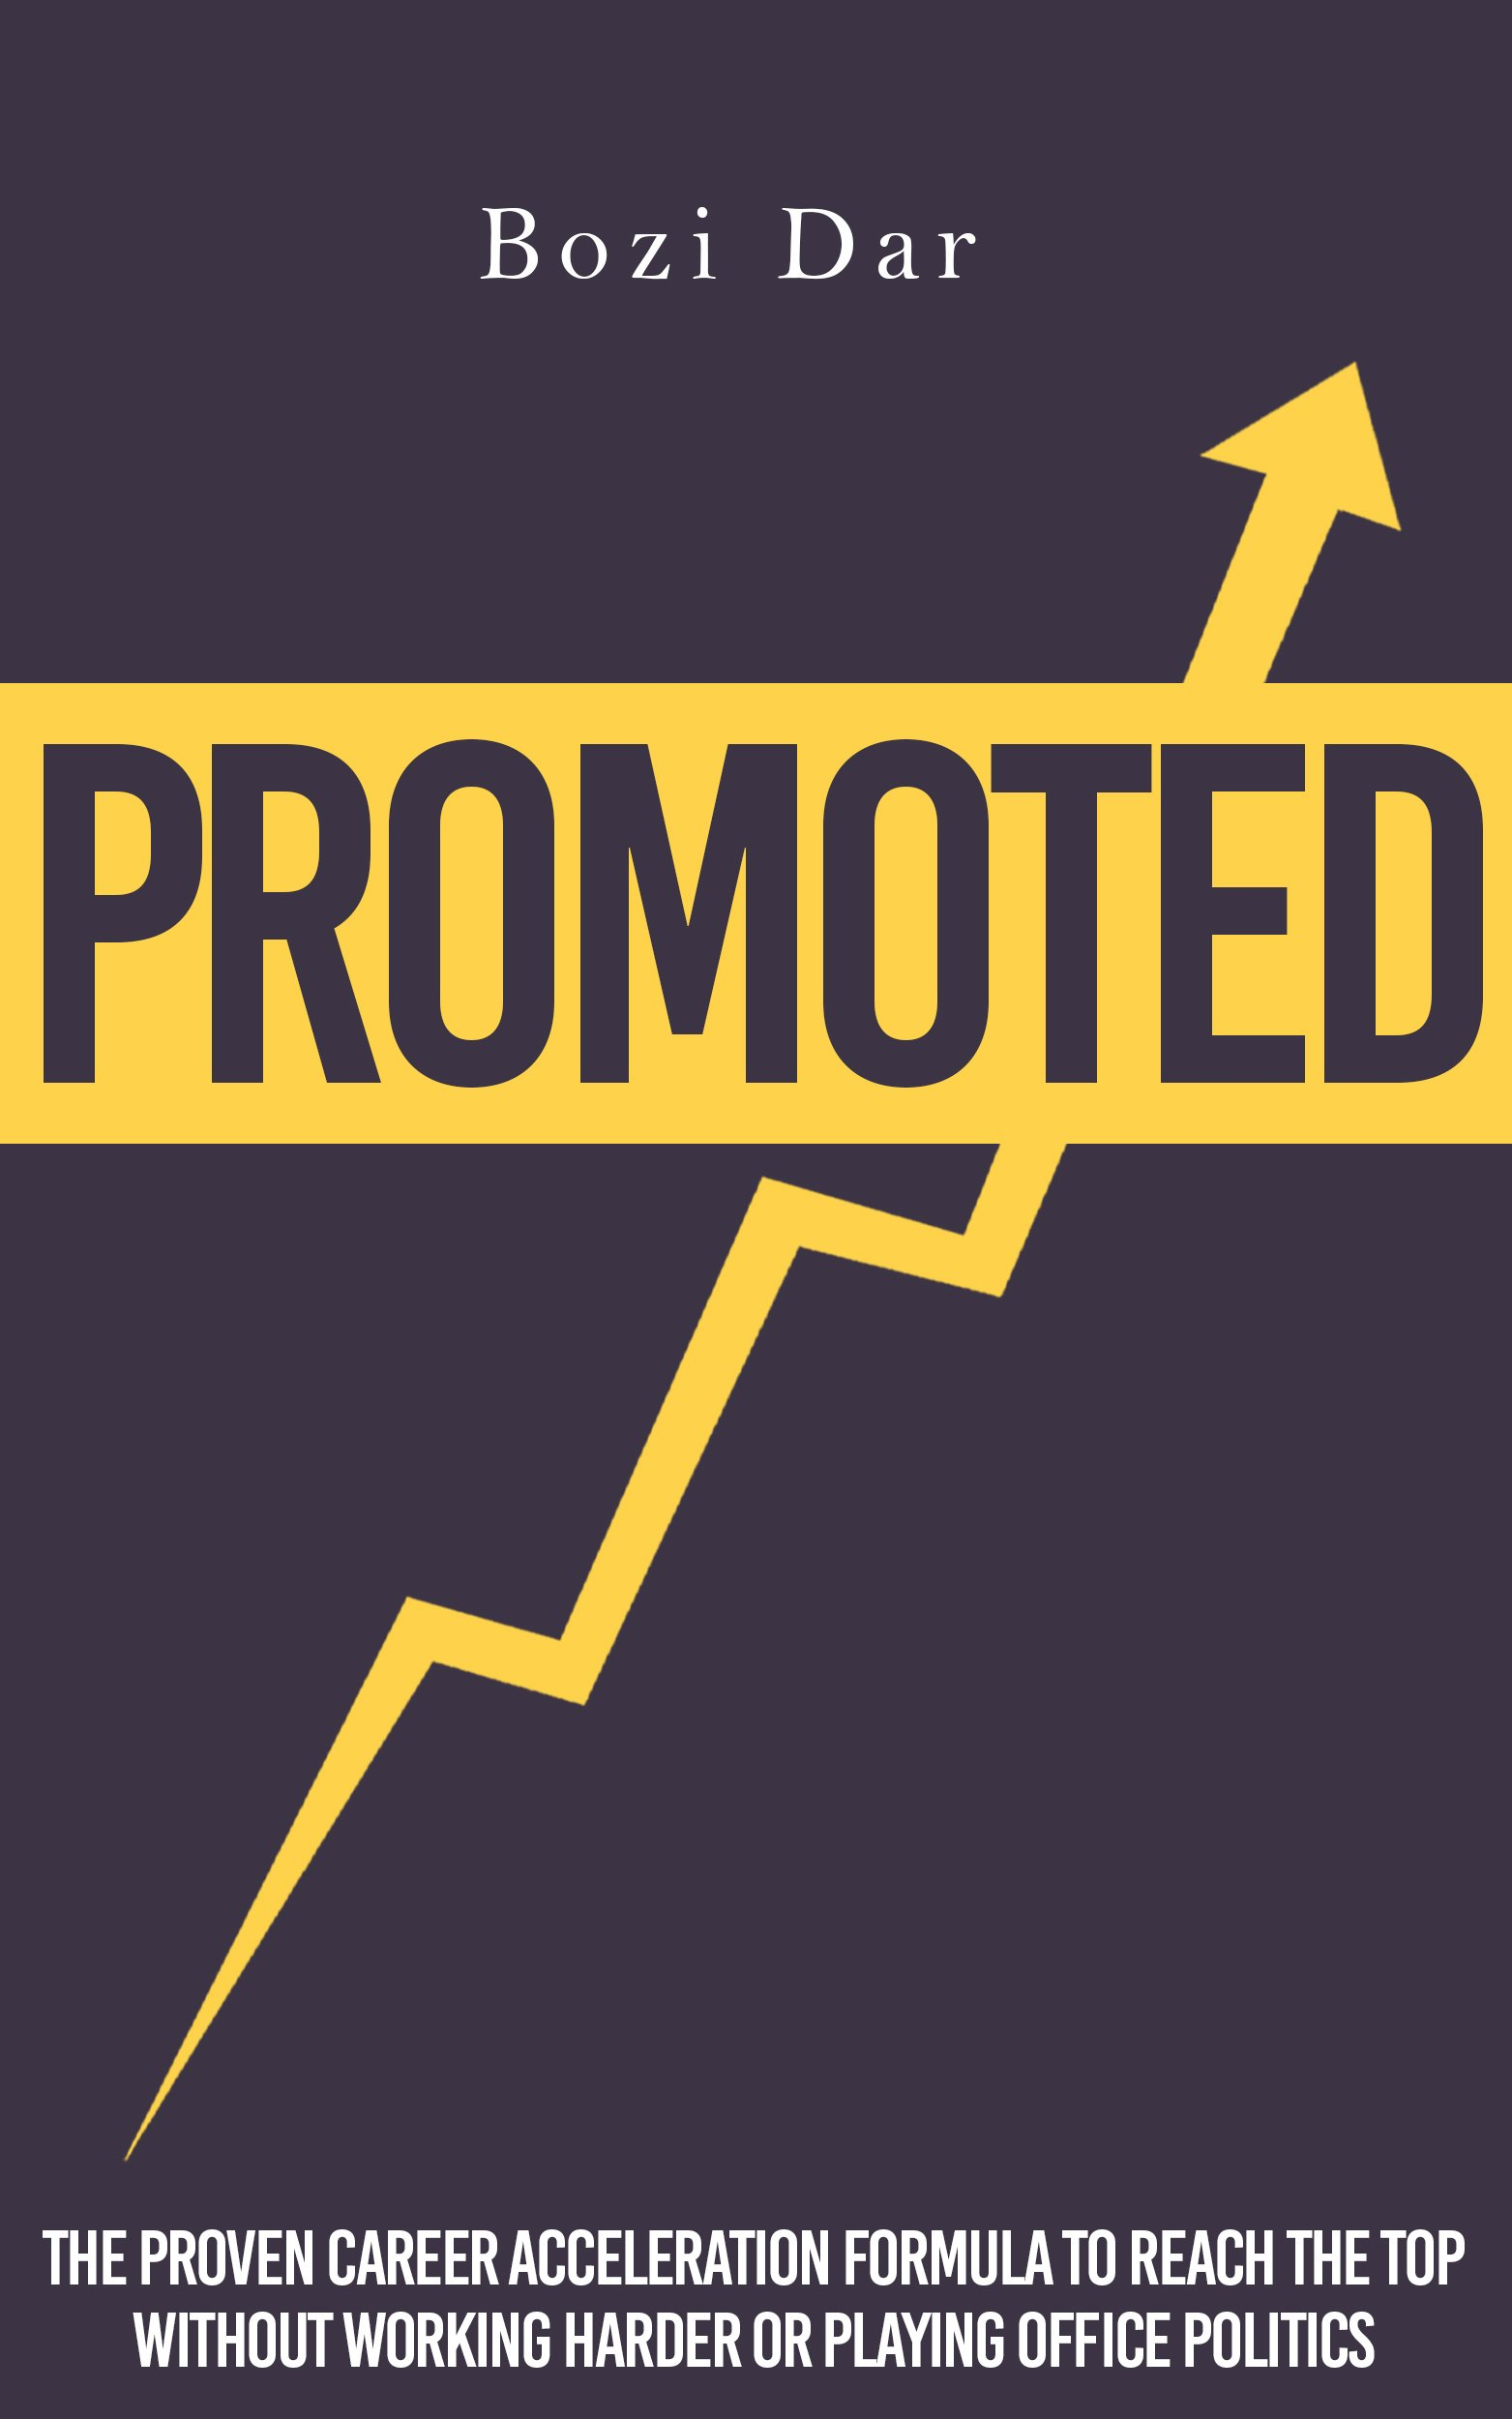 Promoted: The Proven Career Acceleration Formula To Reach The Top Without Working Harder Or Playing Office Politics